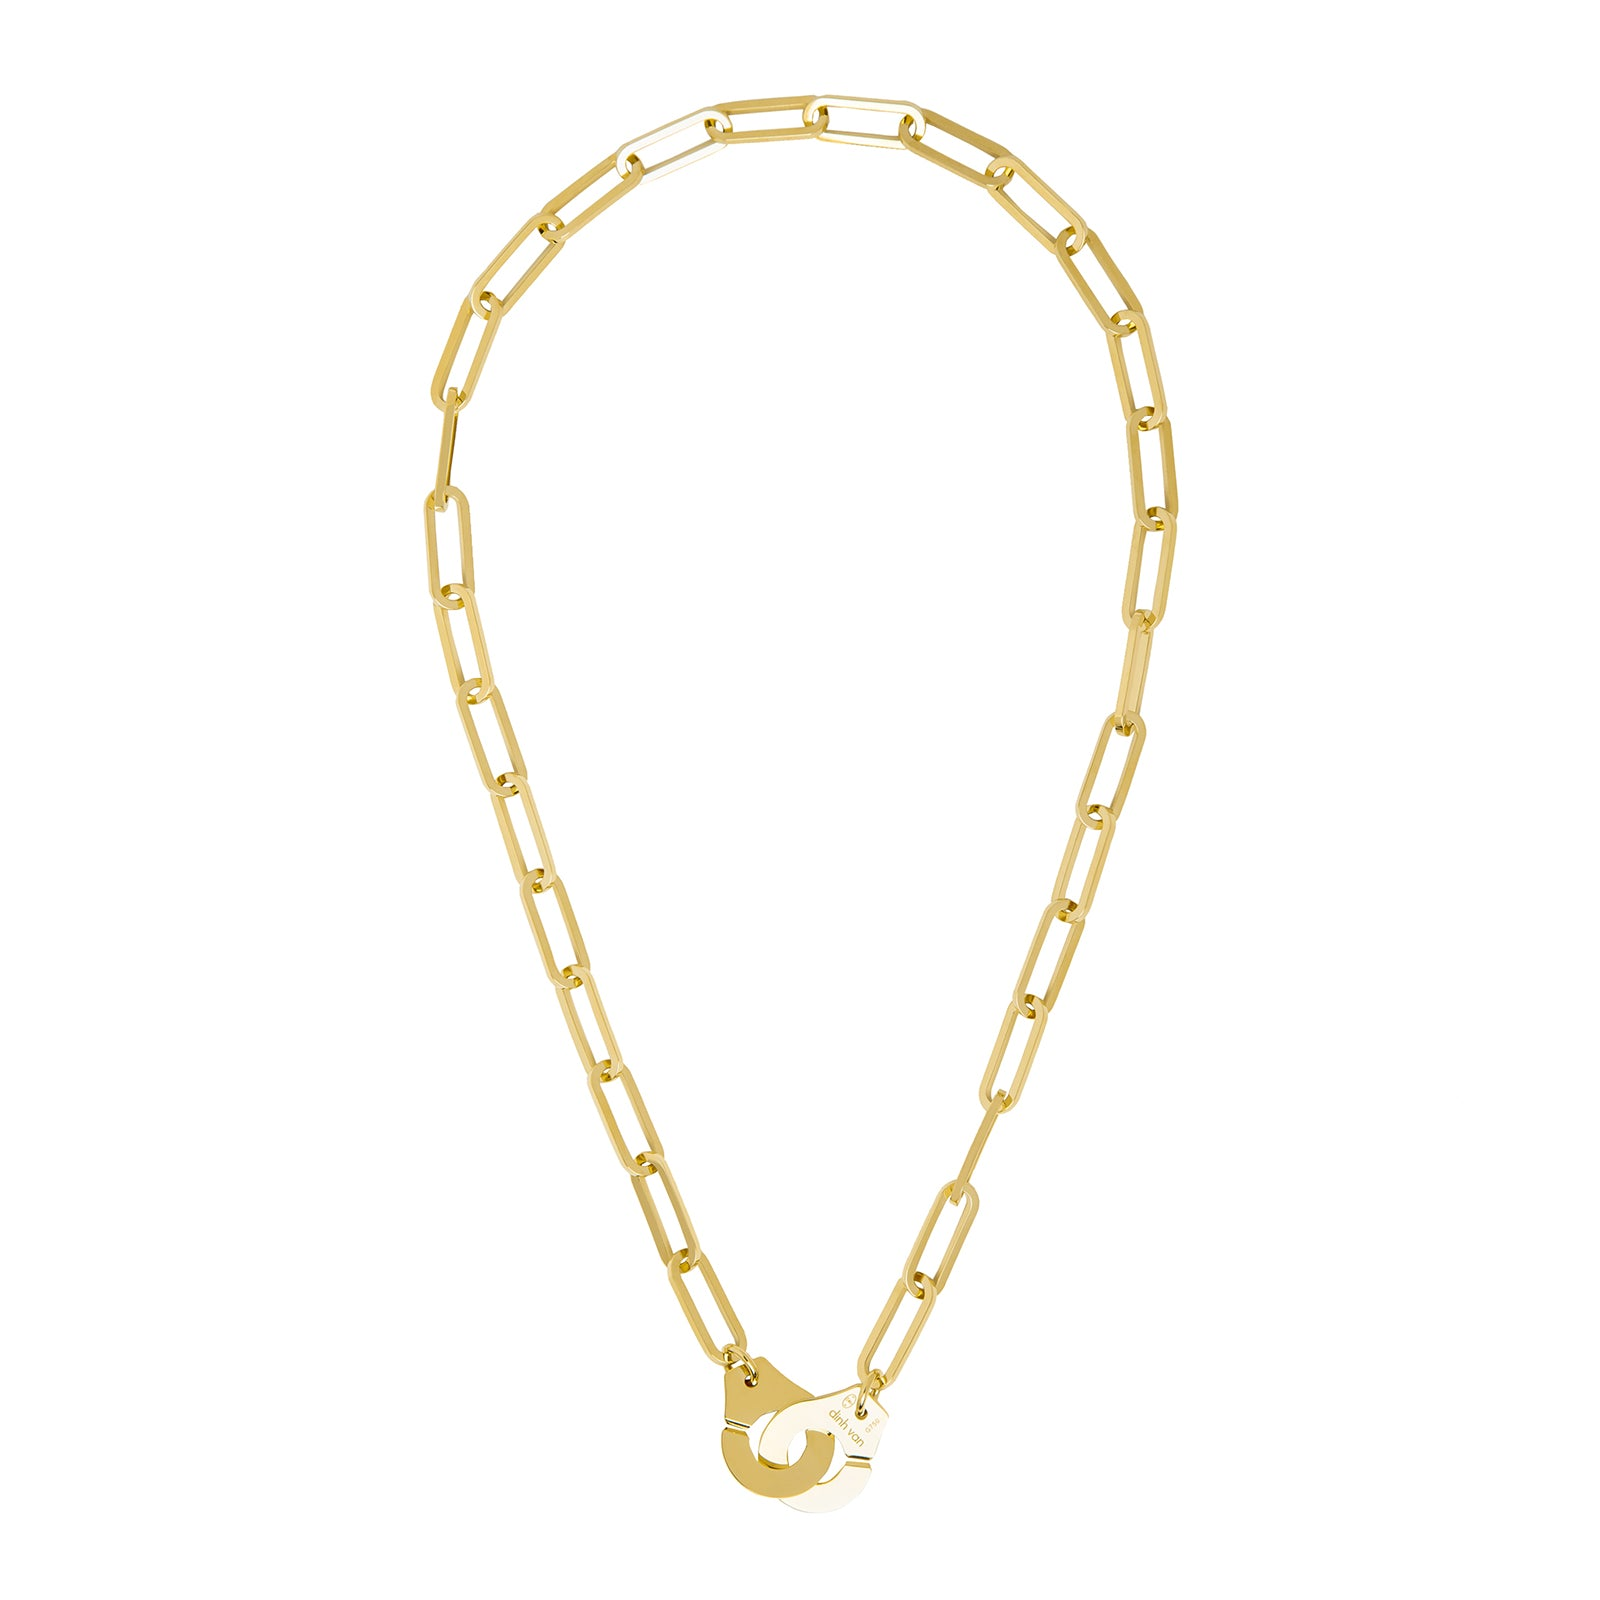 Menottes R15 Mixed Link Necklace - Dinh Van - Necklaces | Broken English Jewelry